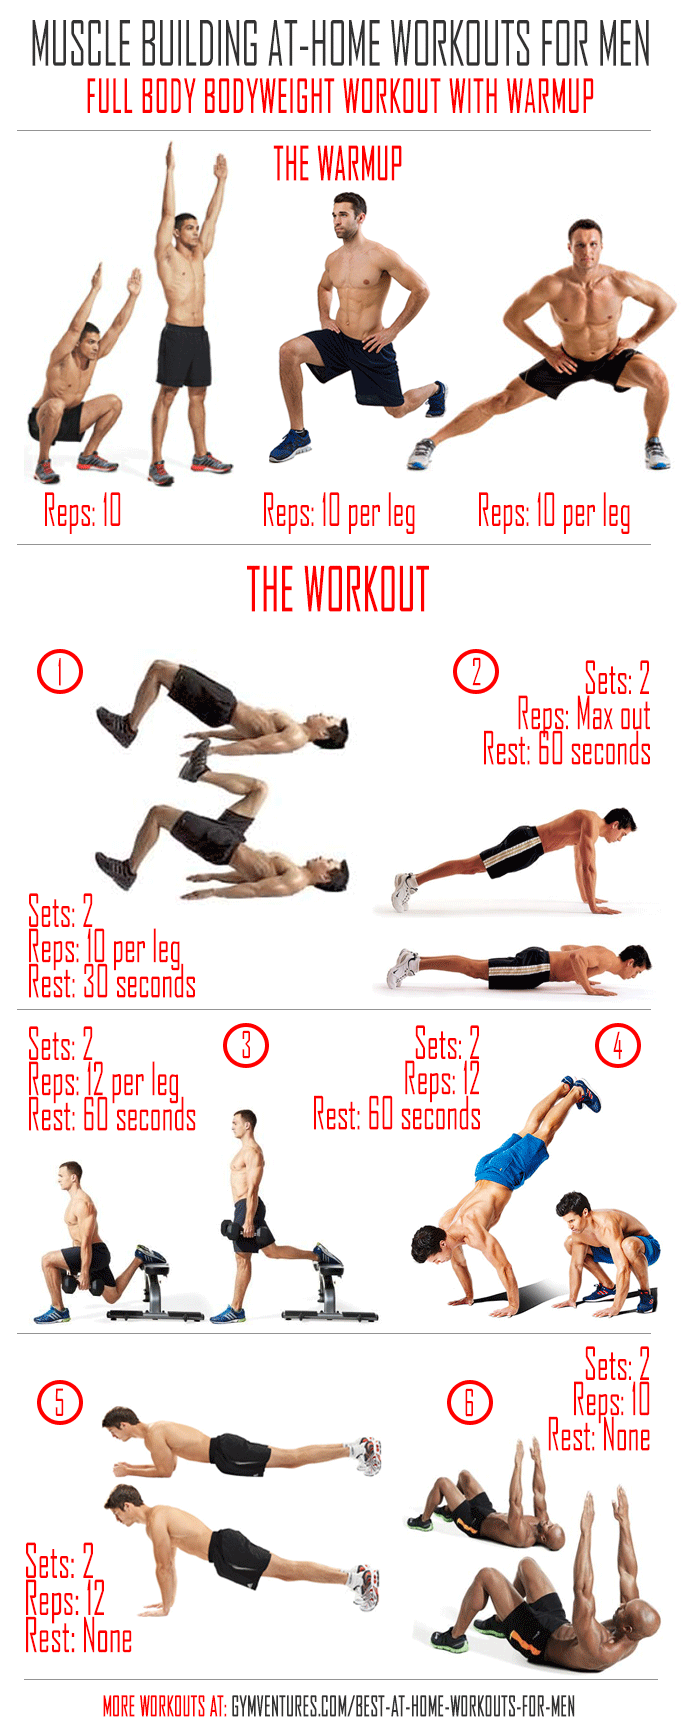 Gain muscle quickly with this full body workout and the